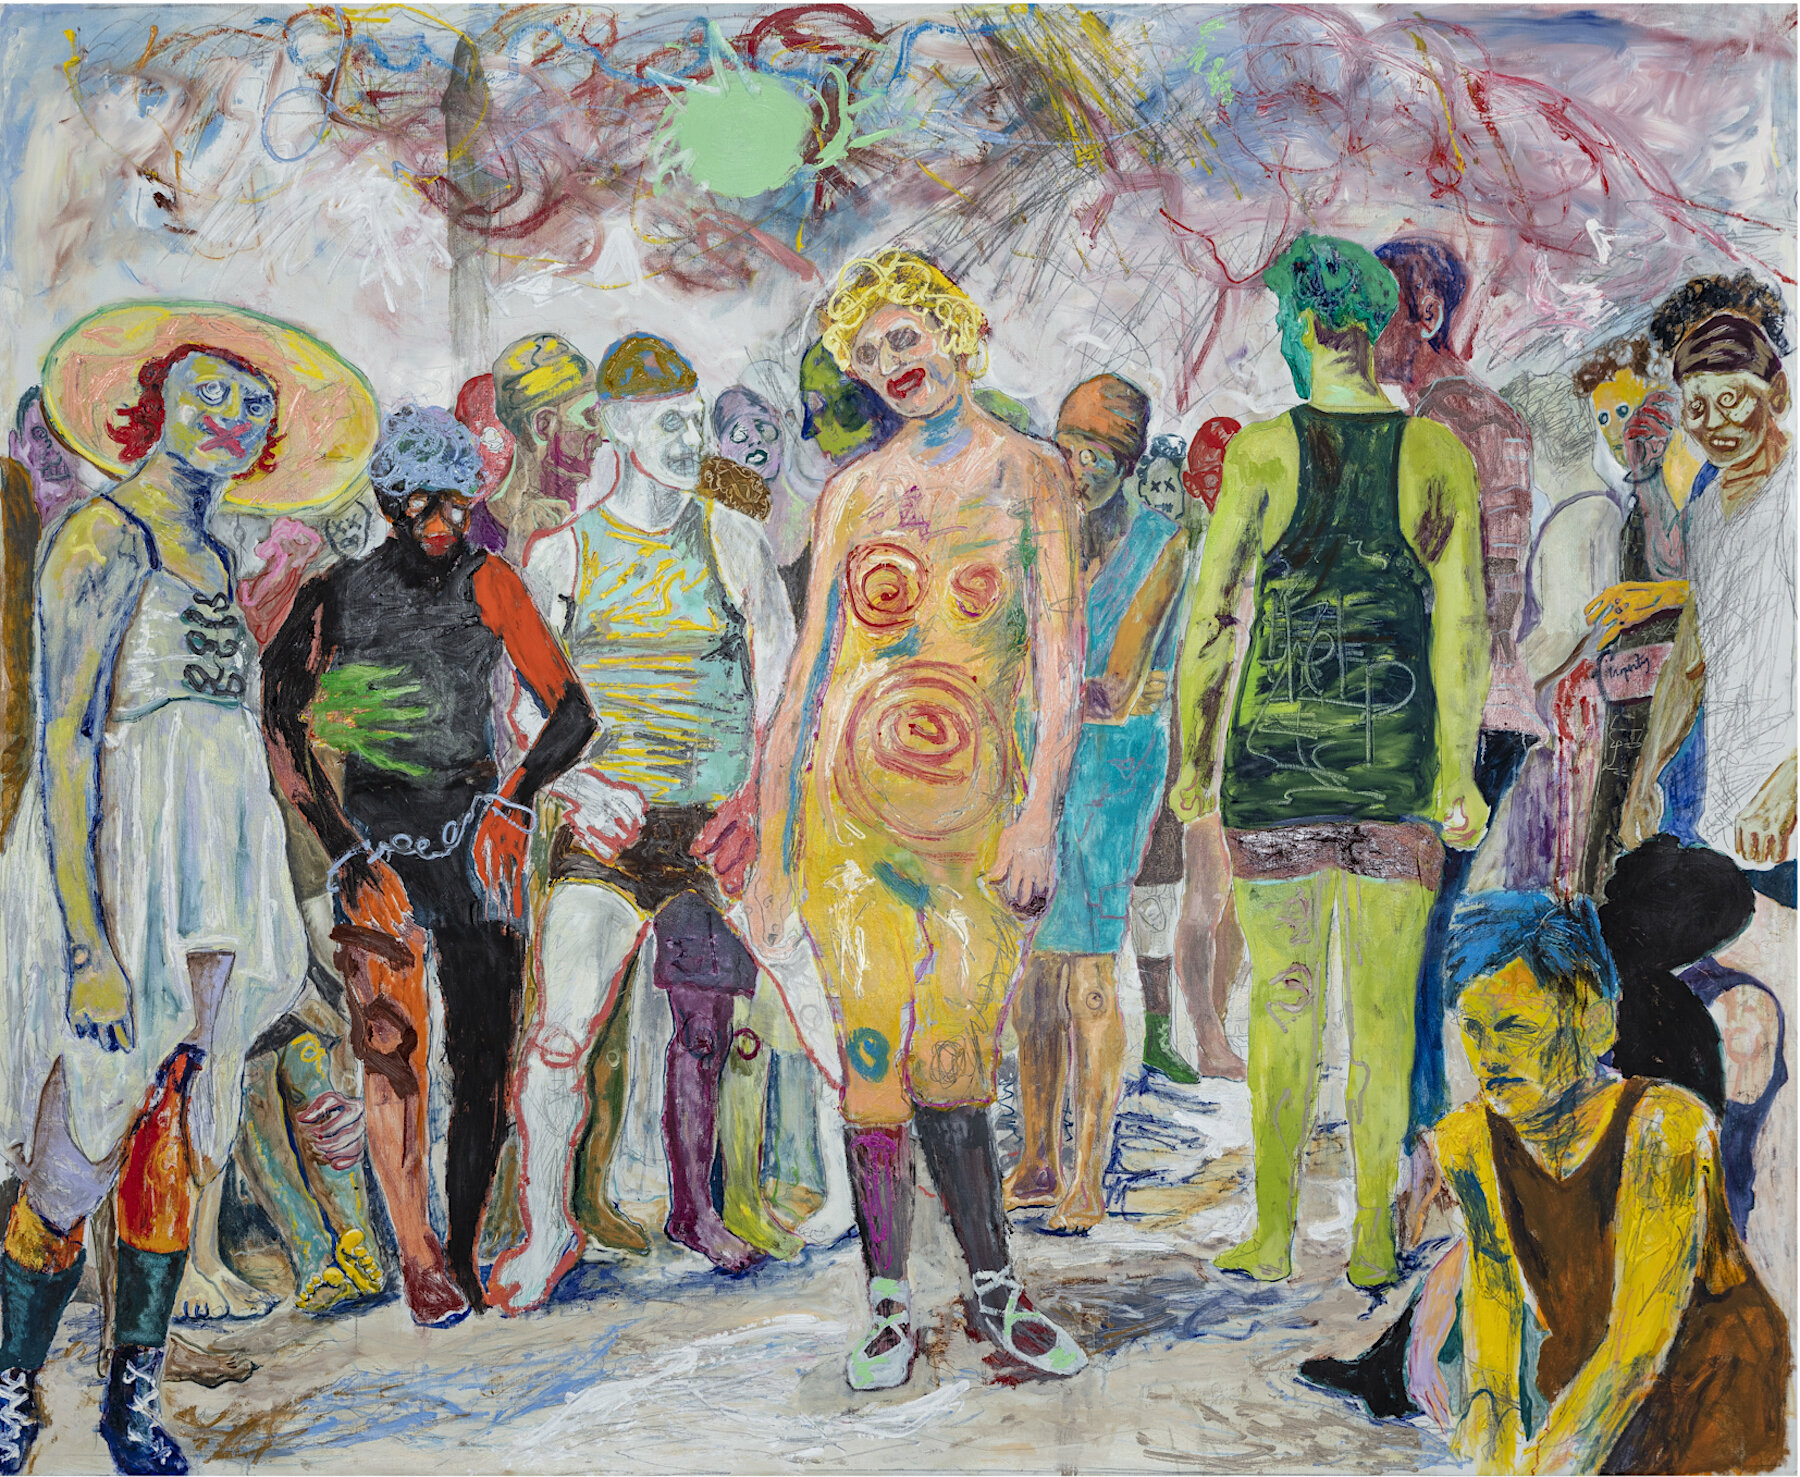 Farley Aguilar   The Beach , 2018  Oil, oil stick, and graphite on linen  76 x 92.5 inches